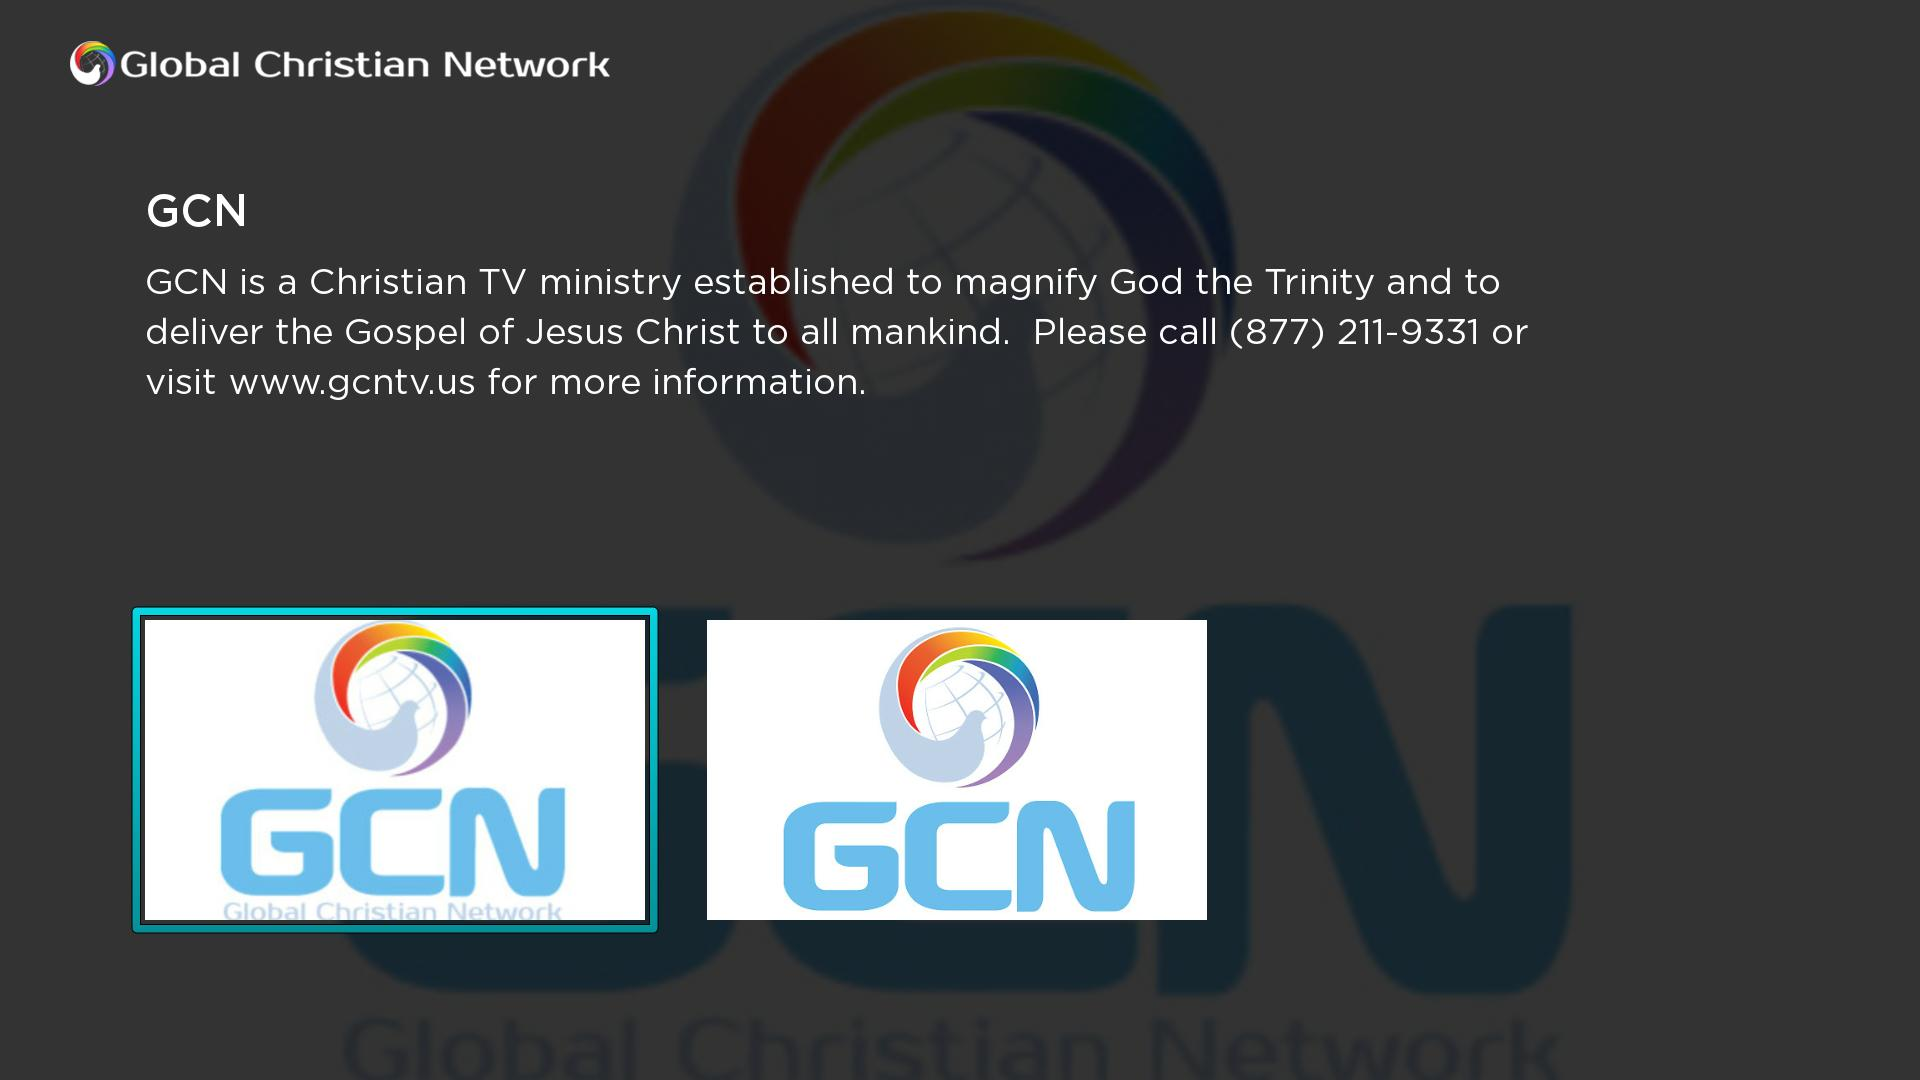 Global Christian Network (GCN) Screenshot 001